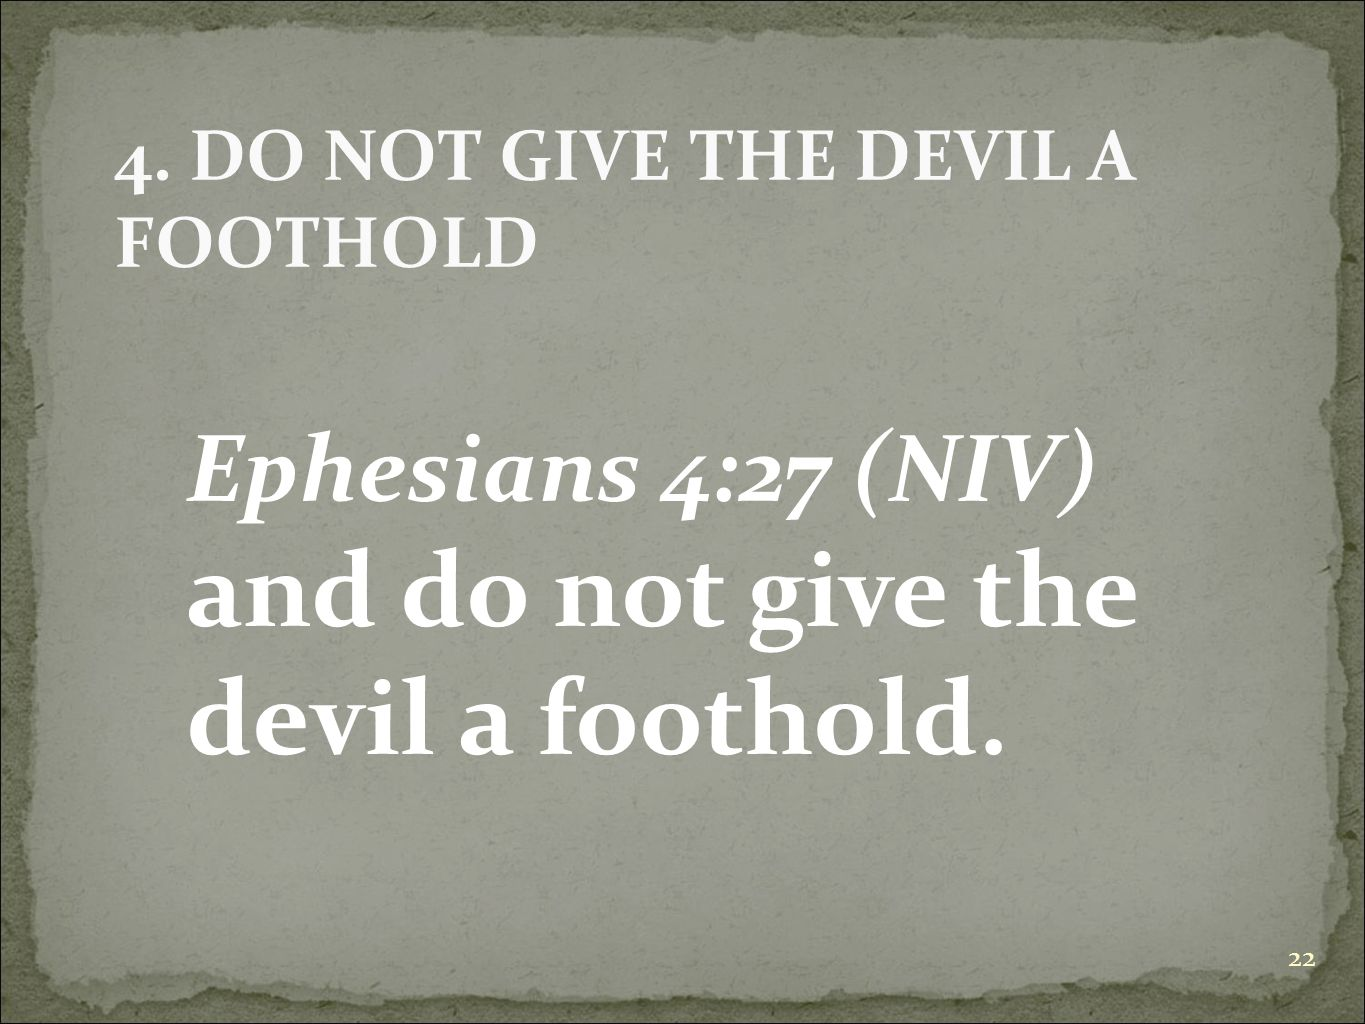 4. DO NOT GIVE THE DEVIL A FOOTHOLD